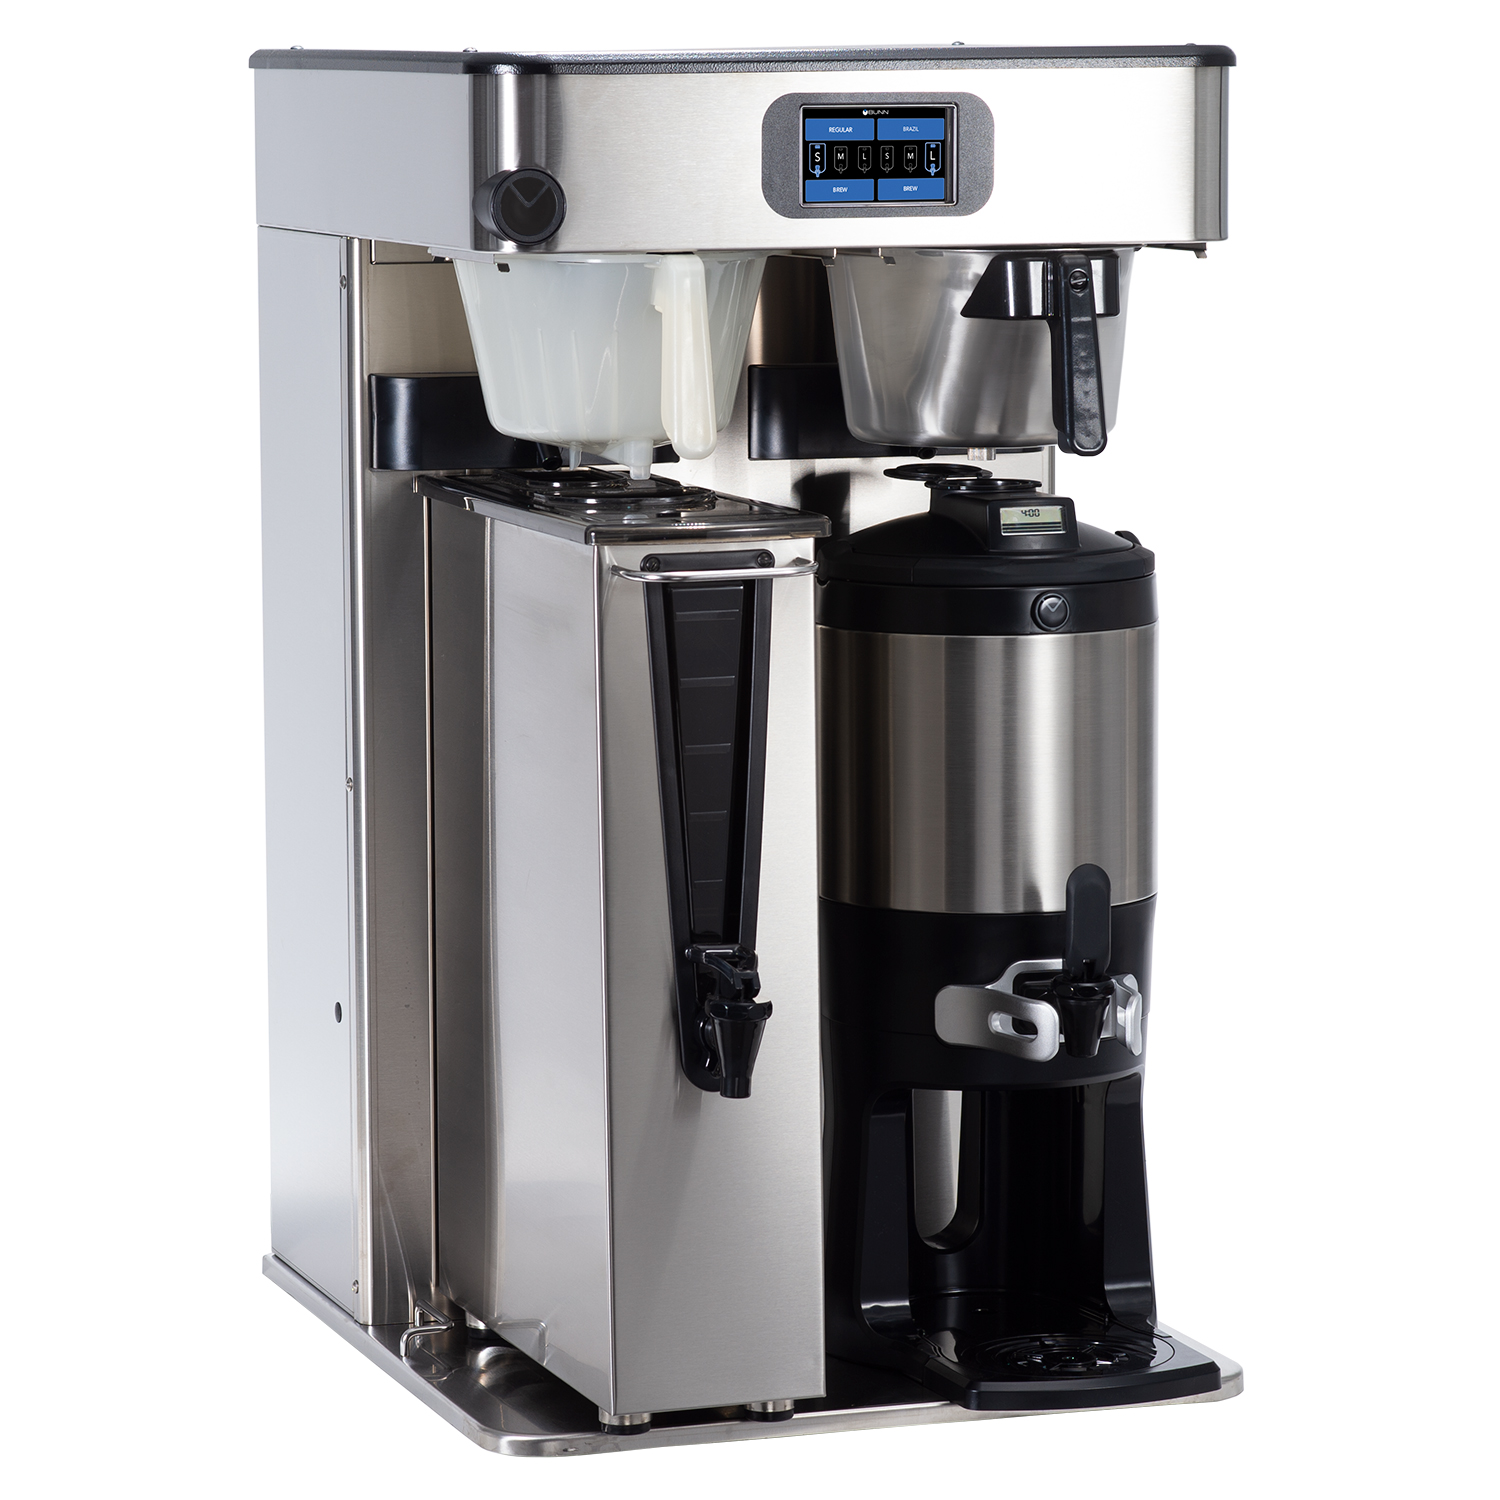 BUNN 54100.0100 coffee tea brewer